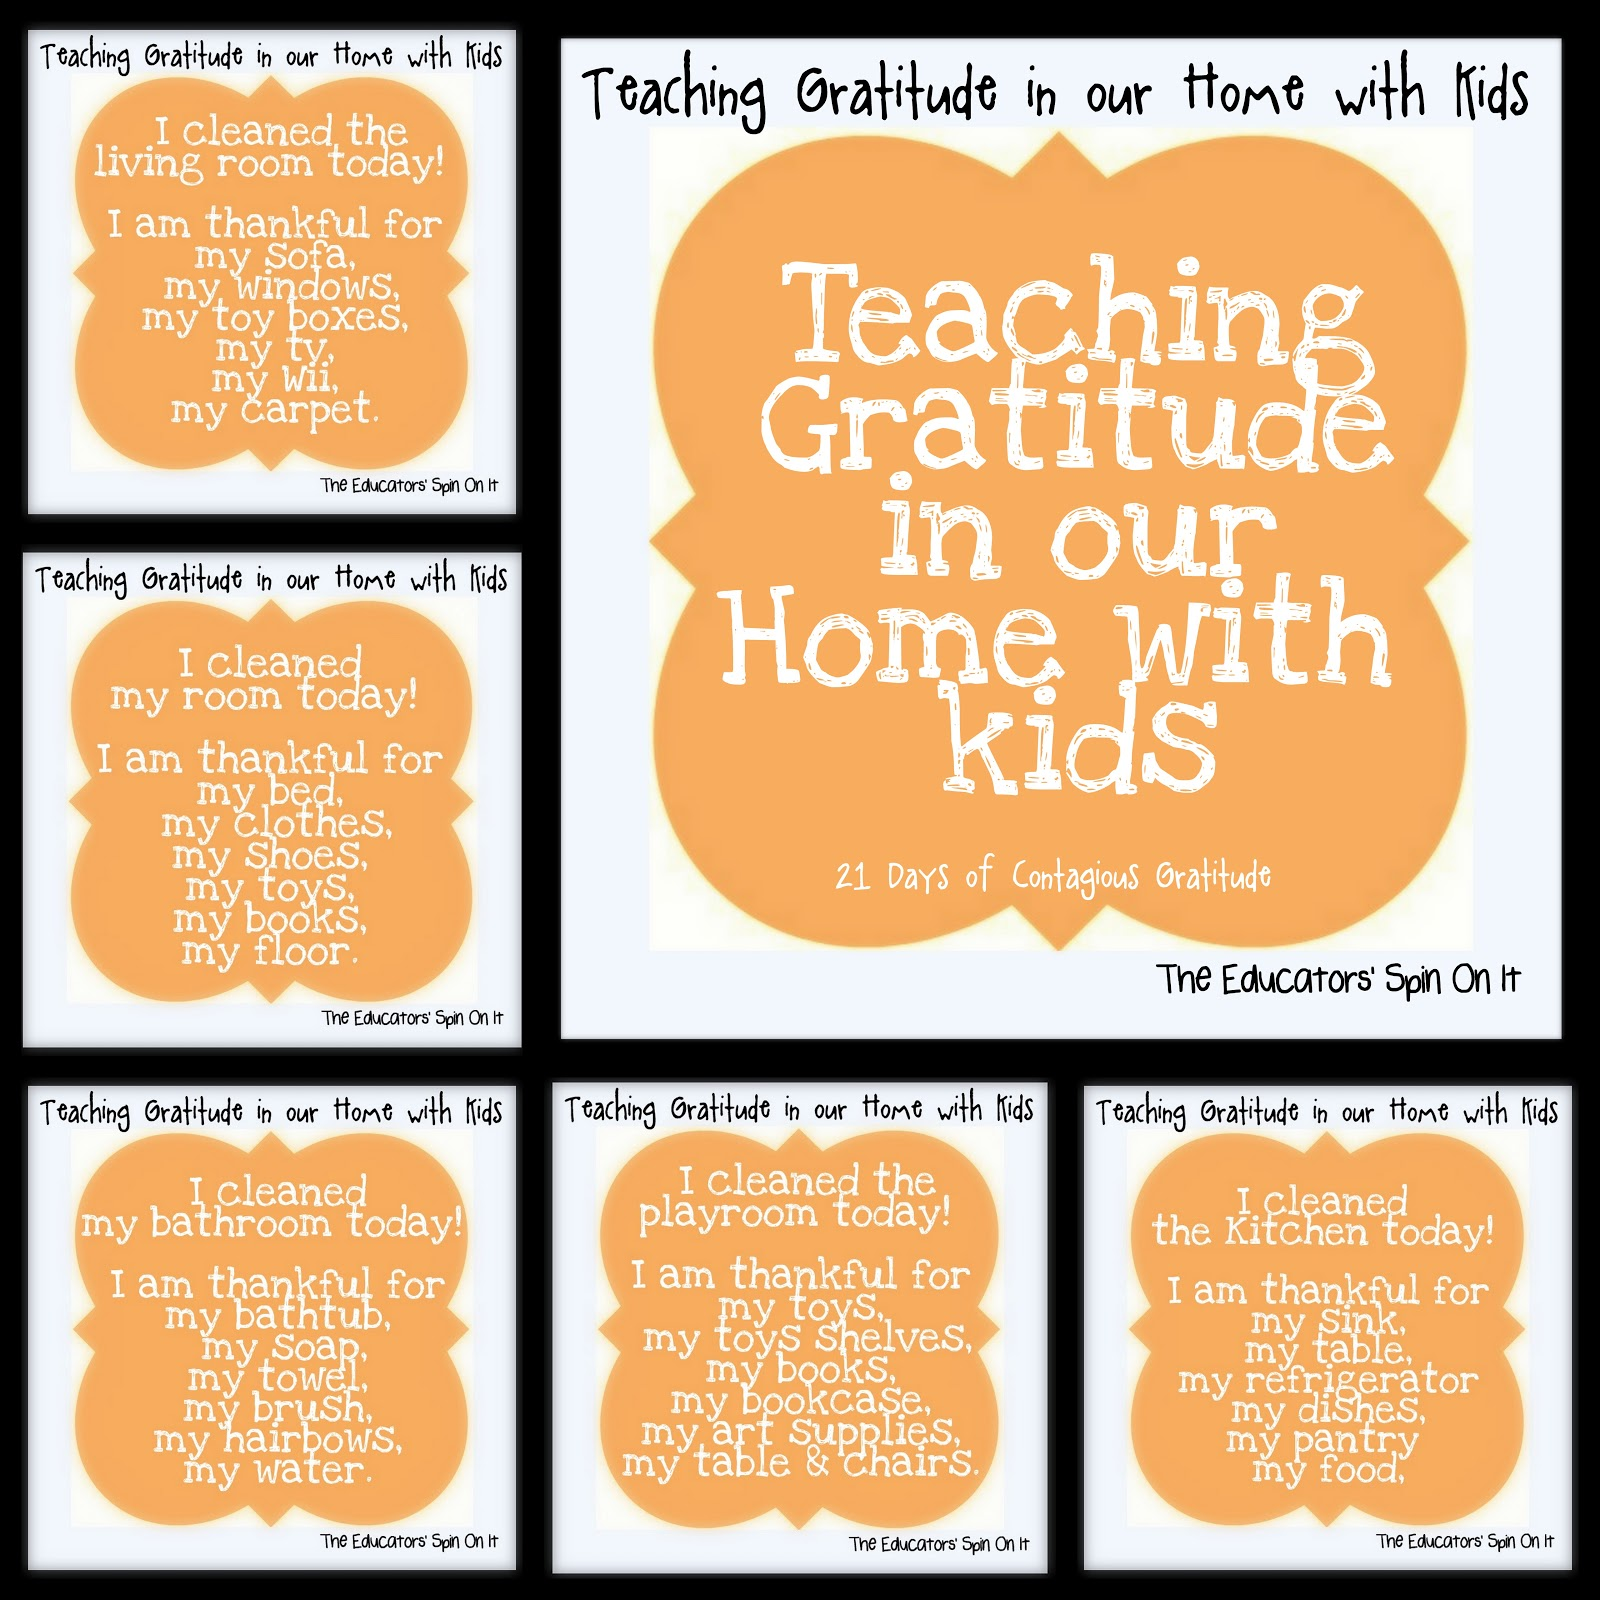 The Educators Spin On It Teaching Gratitude In Our Home